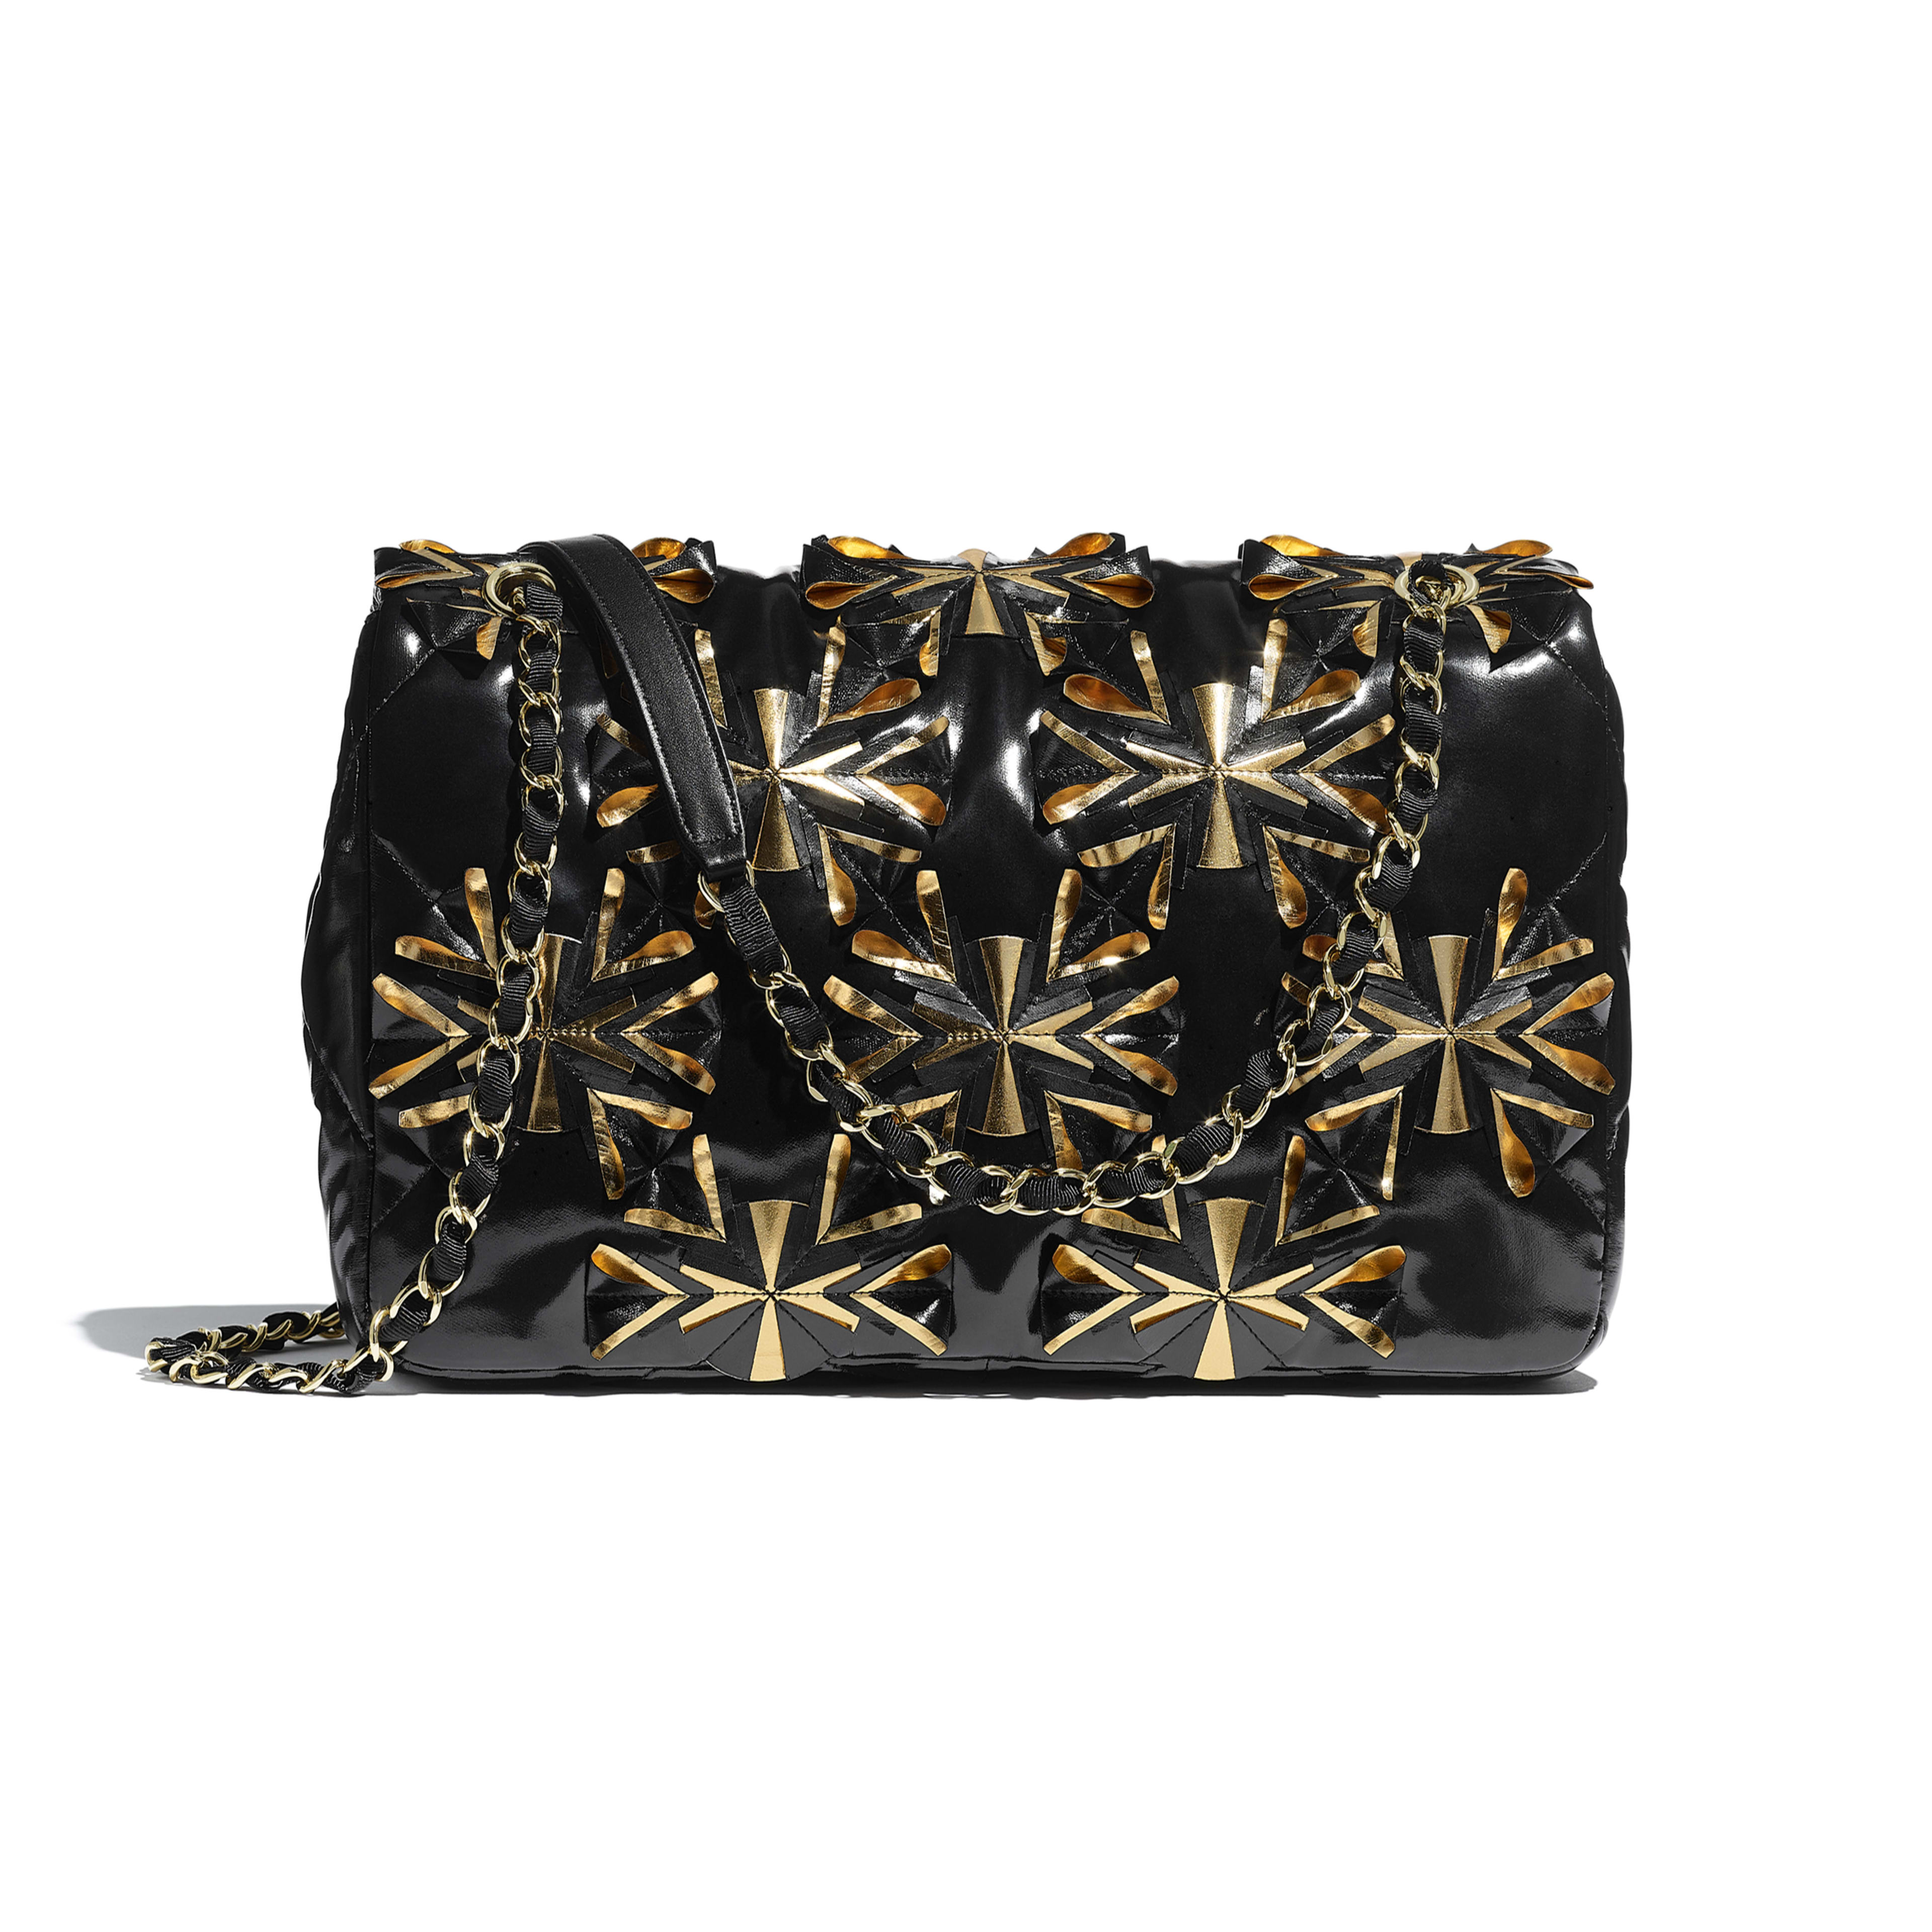 Flap Bag - Black & Gold - Embroidered Vinyl & Gold-Tone Metal - Alternative view - see full sized version